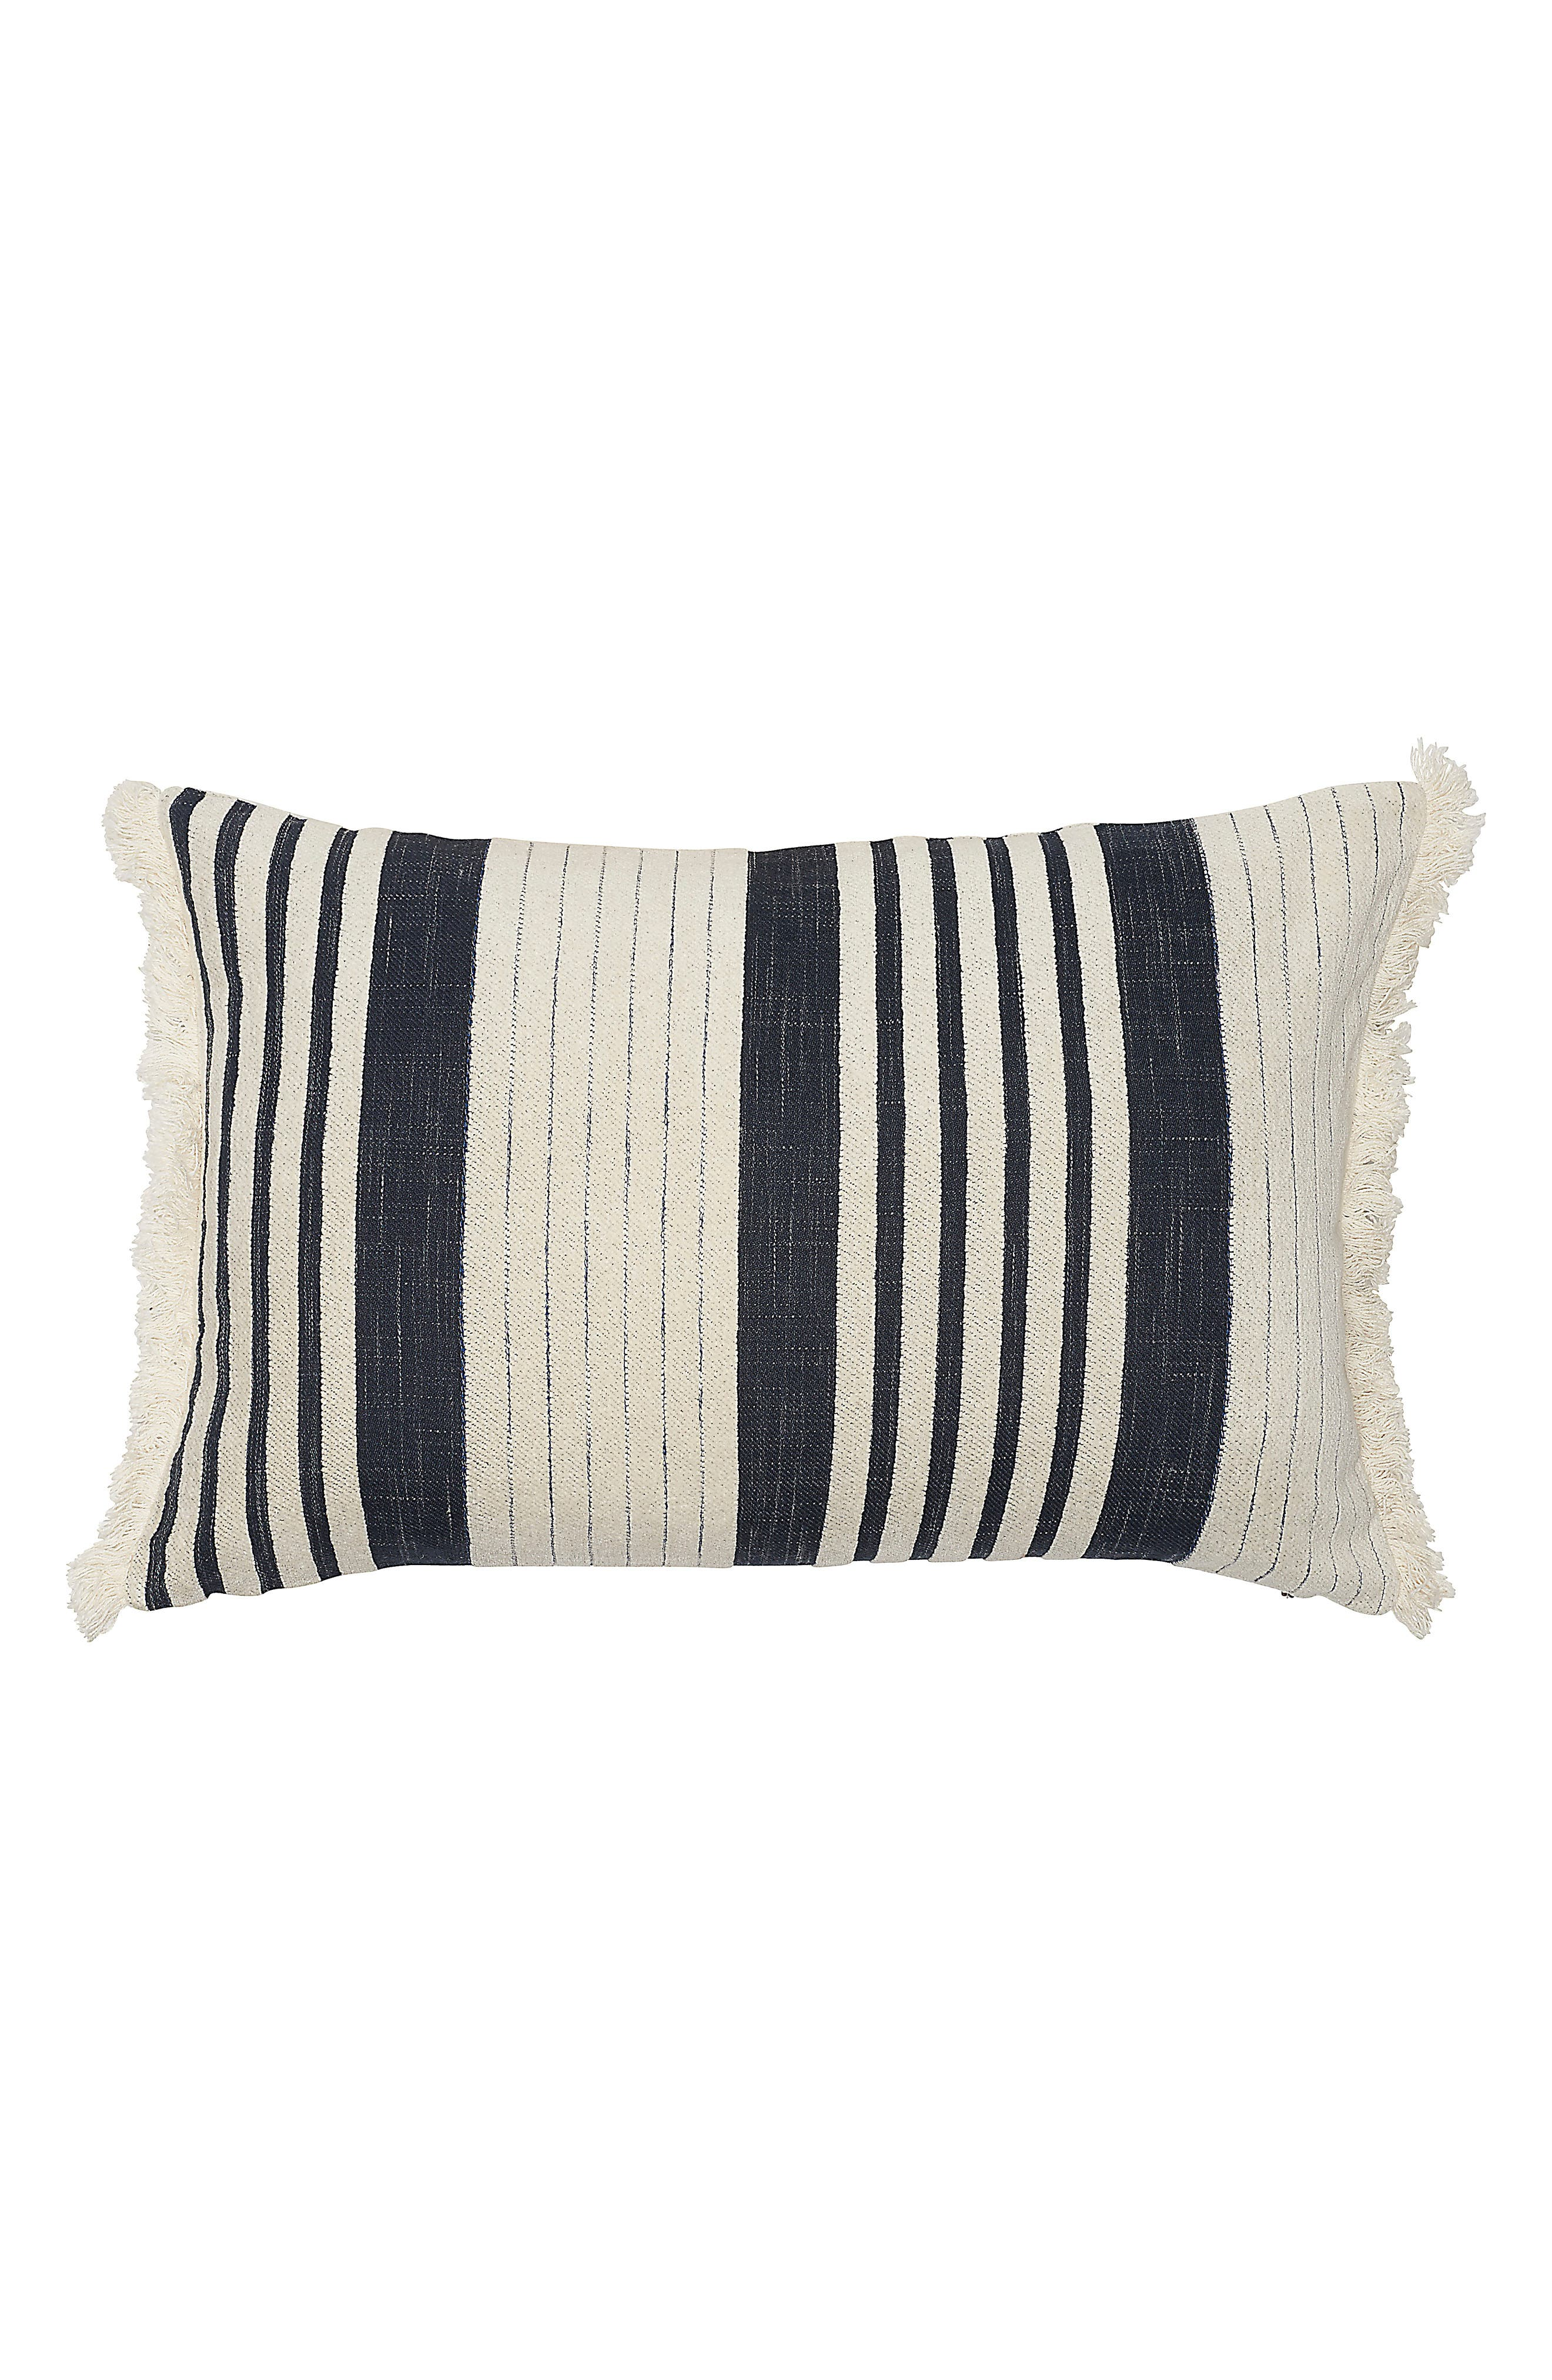 EADIE LIFESTYLE Chilled Chenille Accent Pillow, Main, color, NAVY/ WHITE